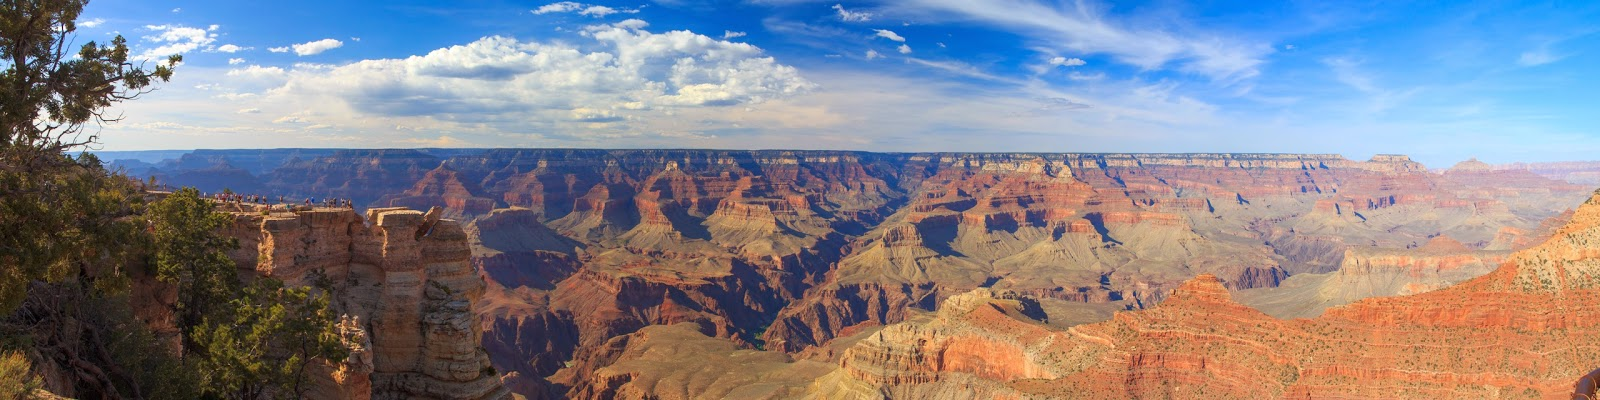 Grand-Canyon-Panorama-2013